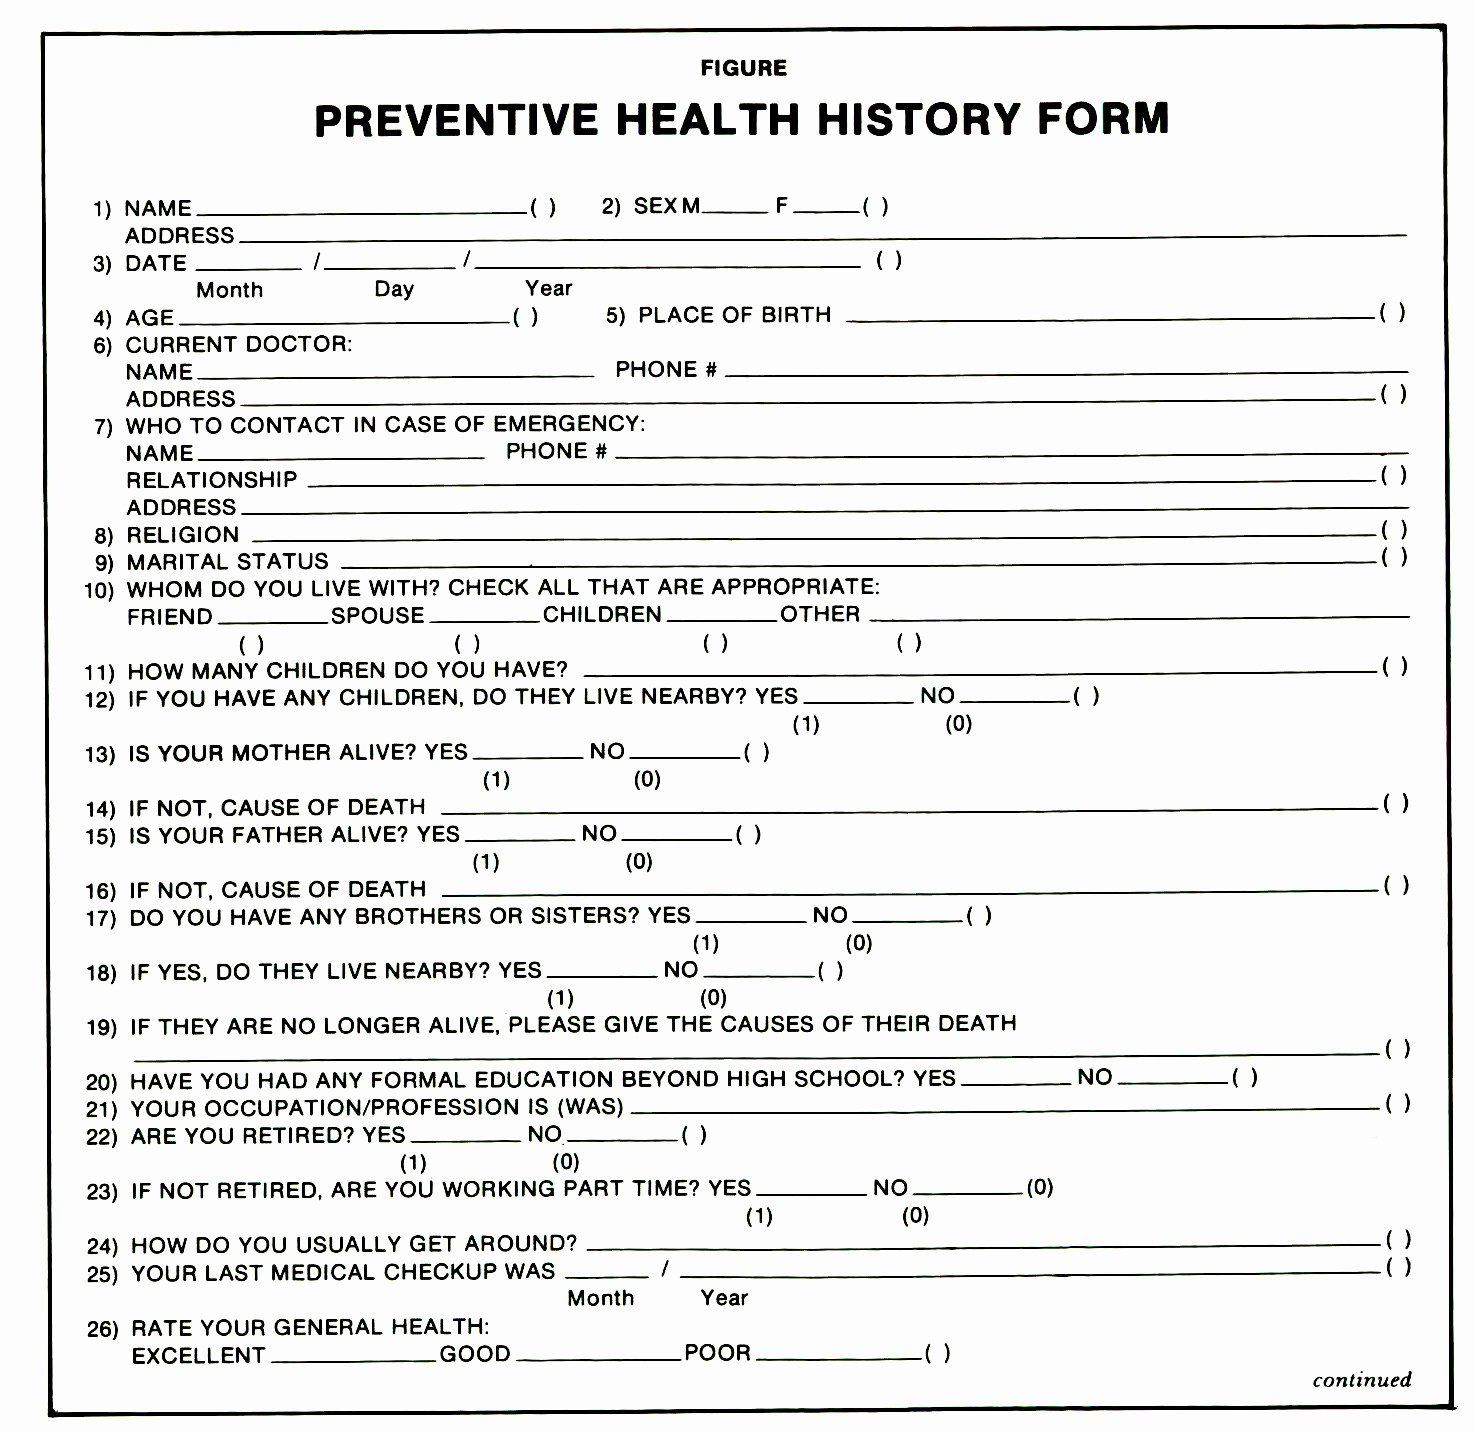 The Preventive Health History form A Questionnaire for